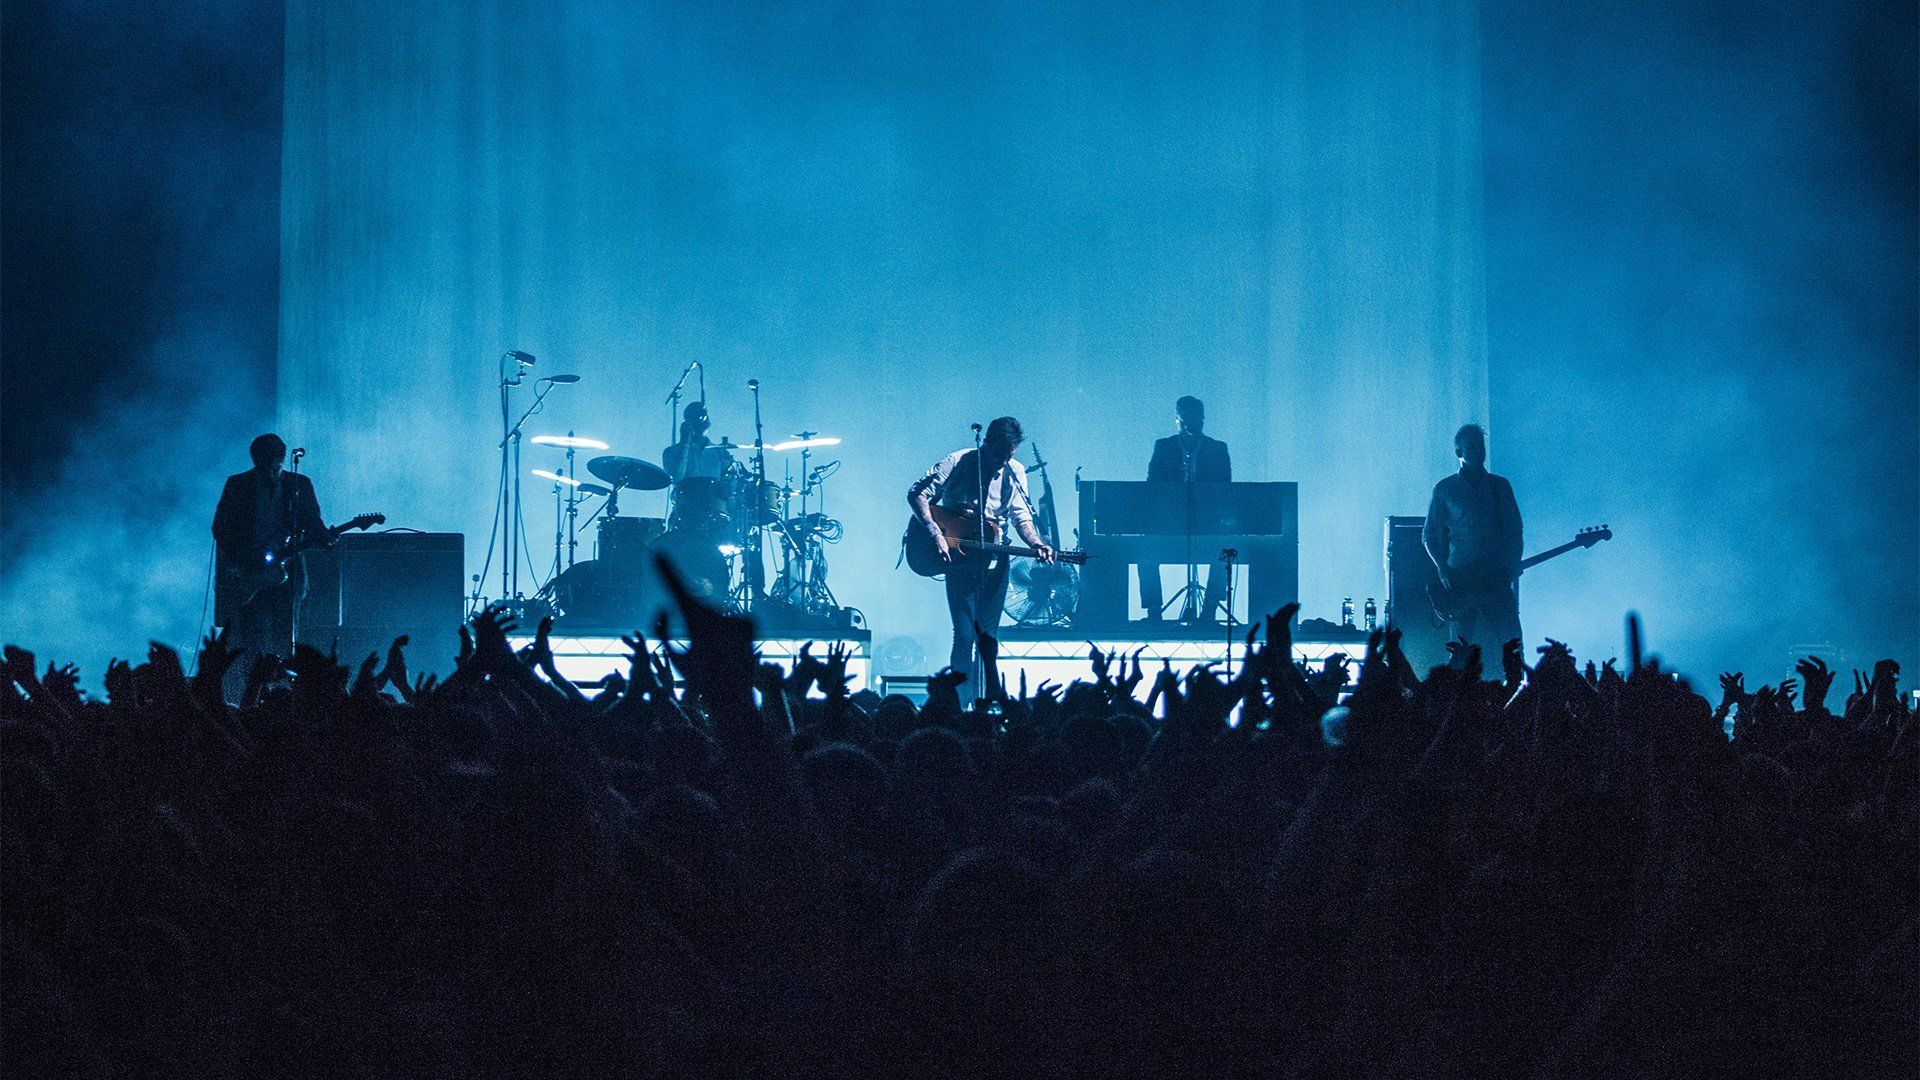 A band play on an atmospheric stage at night, with smoke and blue light, and hands in the foreground. Photo by Ben Morse.